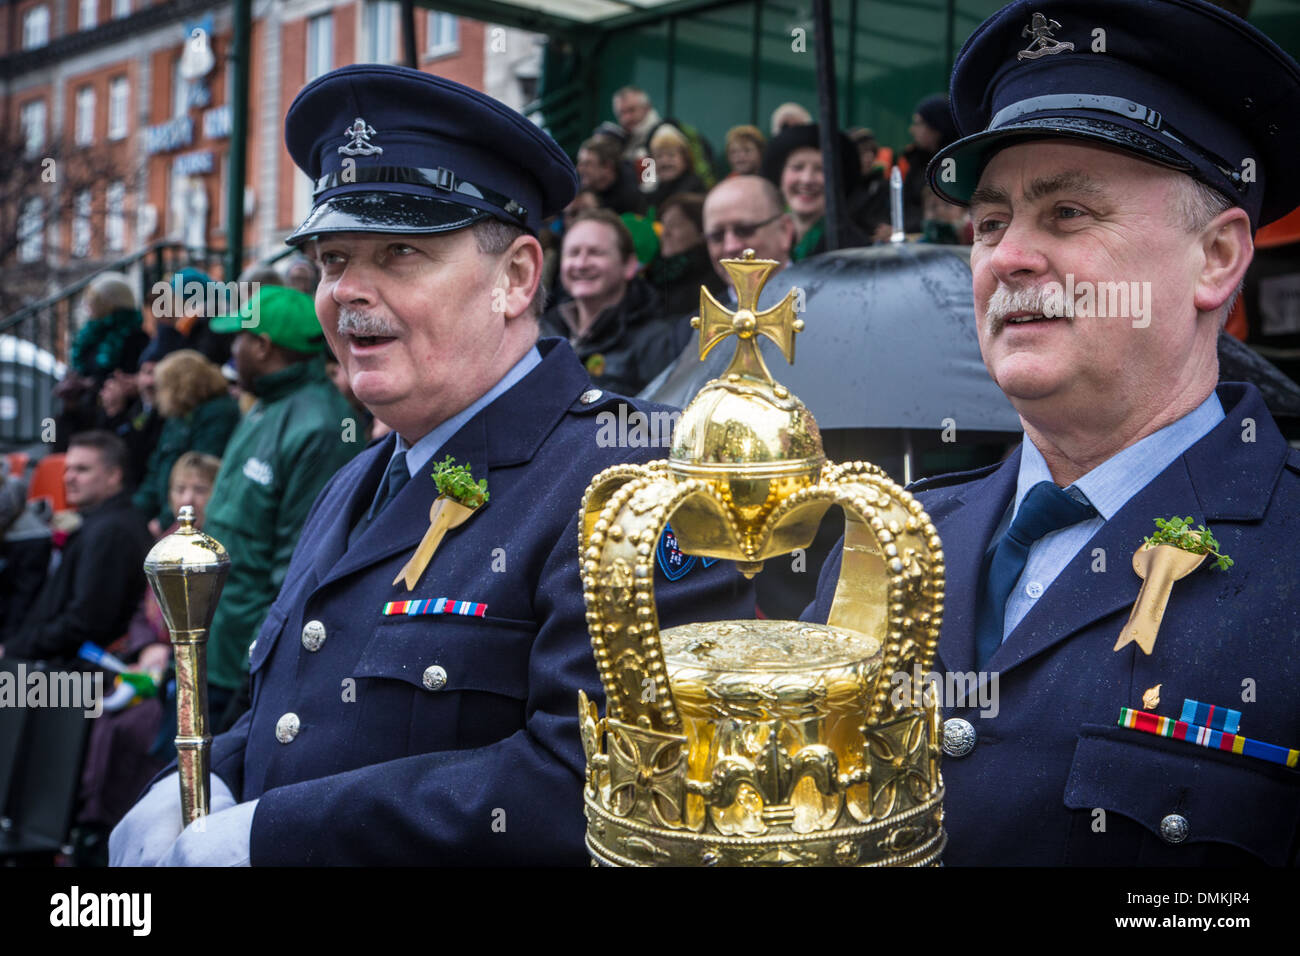 AMAZED POLICEMEN IN FRONT OF THE OFFICIAL STANDS, SAINT PATRICK'S DAY, DUBLIN, IRELAND - Stock Image